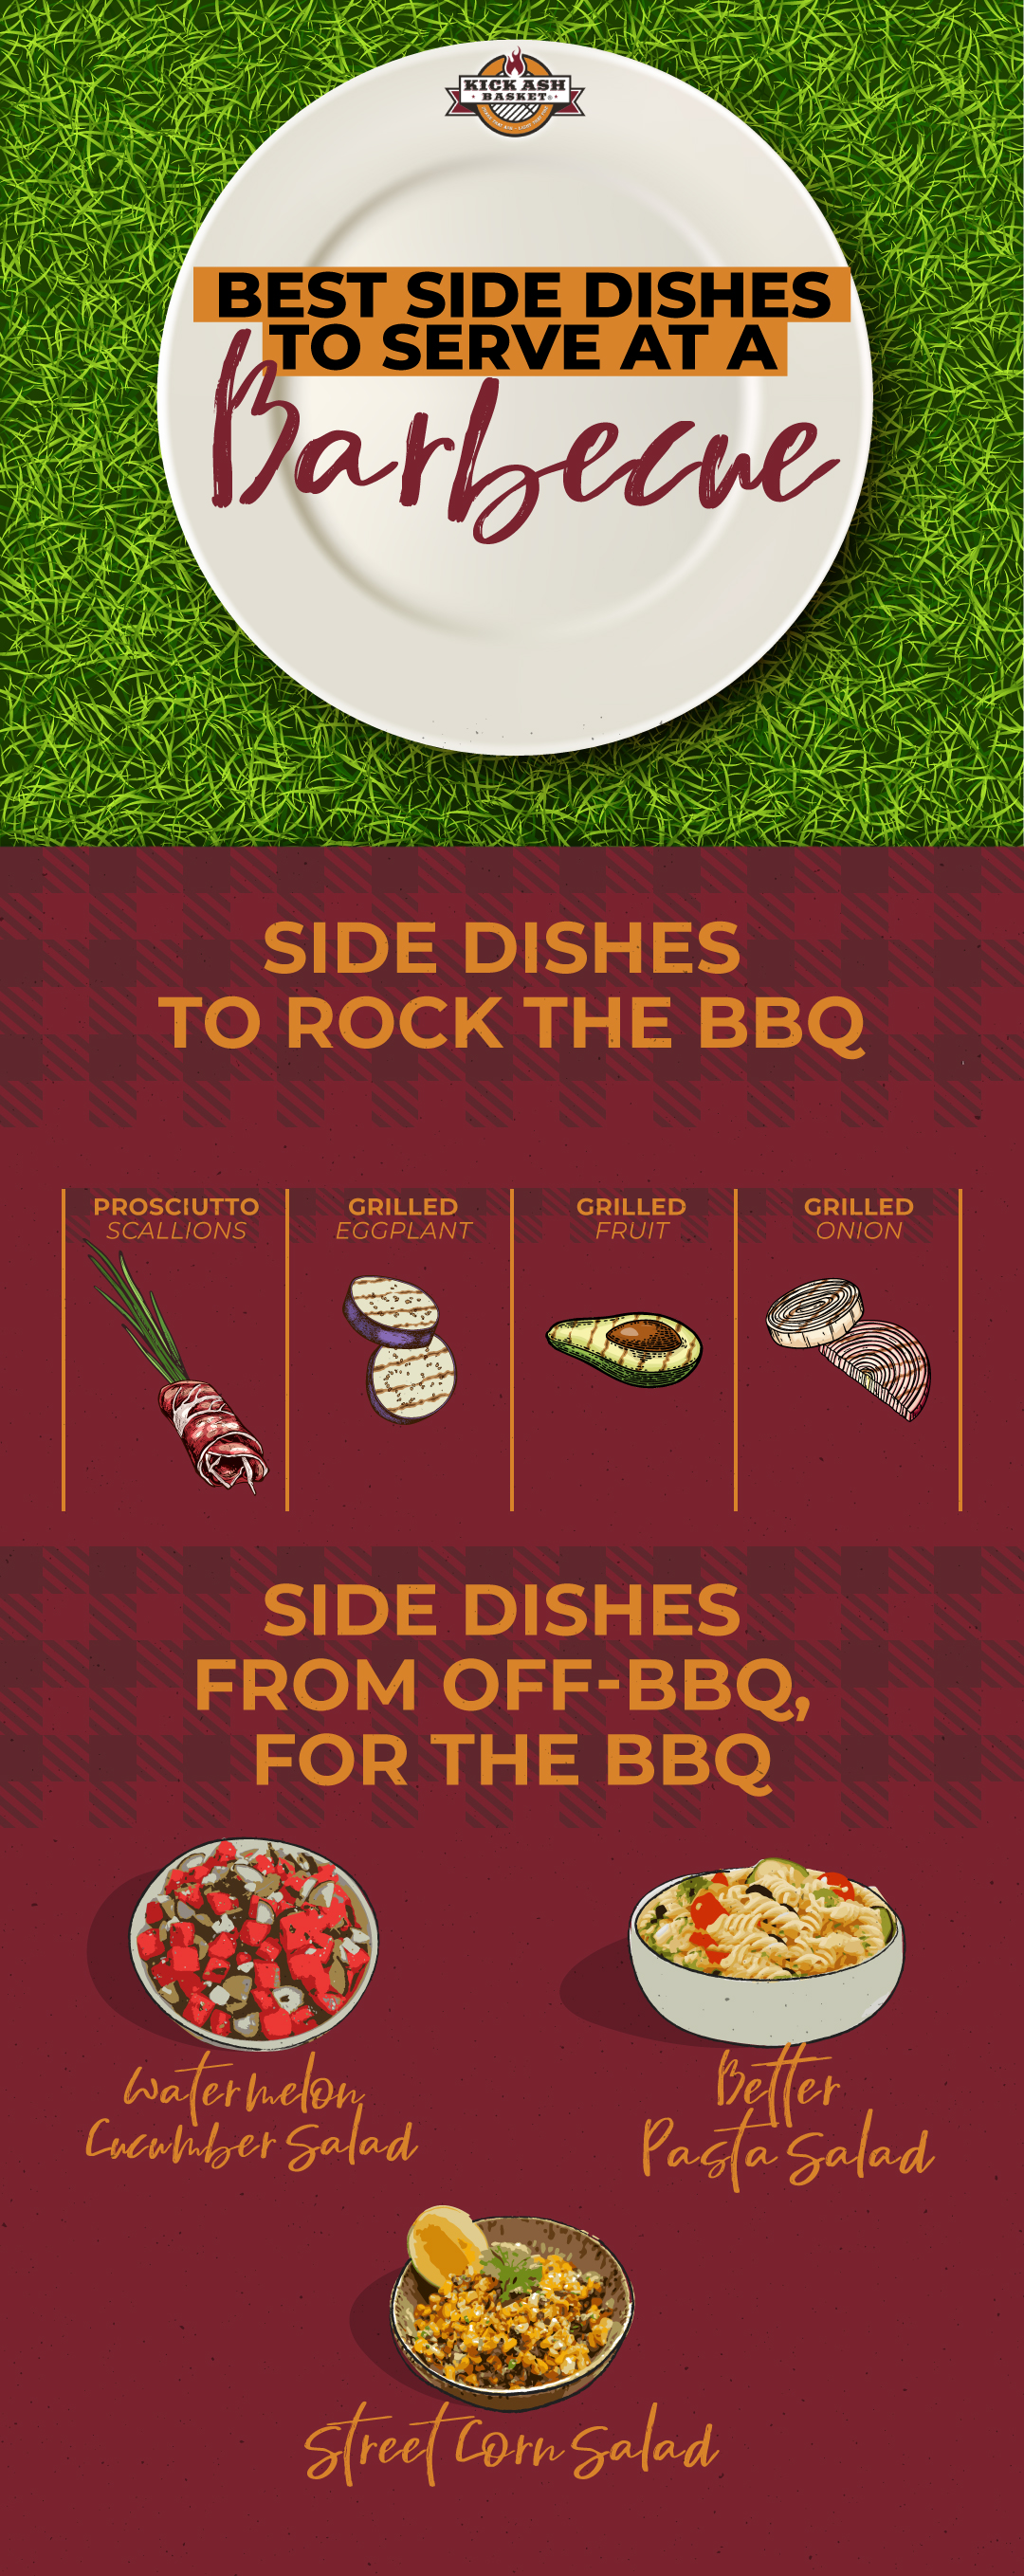 Side Dishes from Off-BBQ, for the BBQ